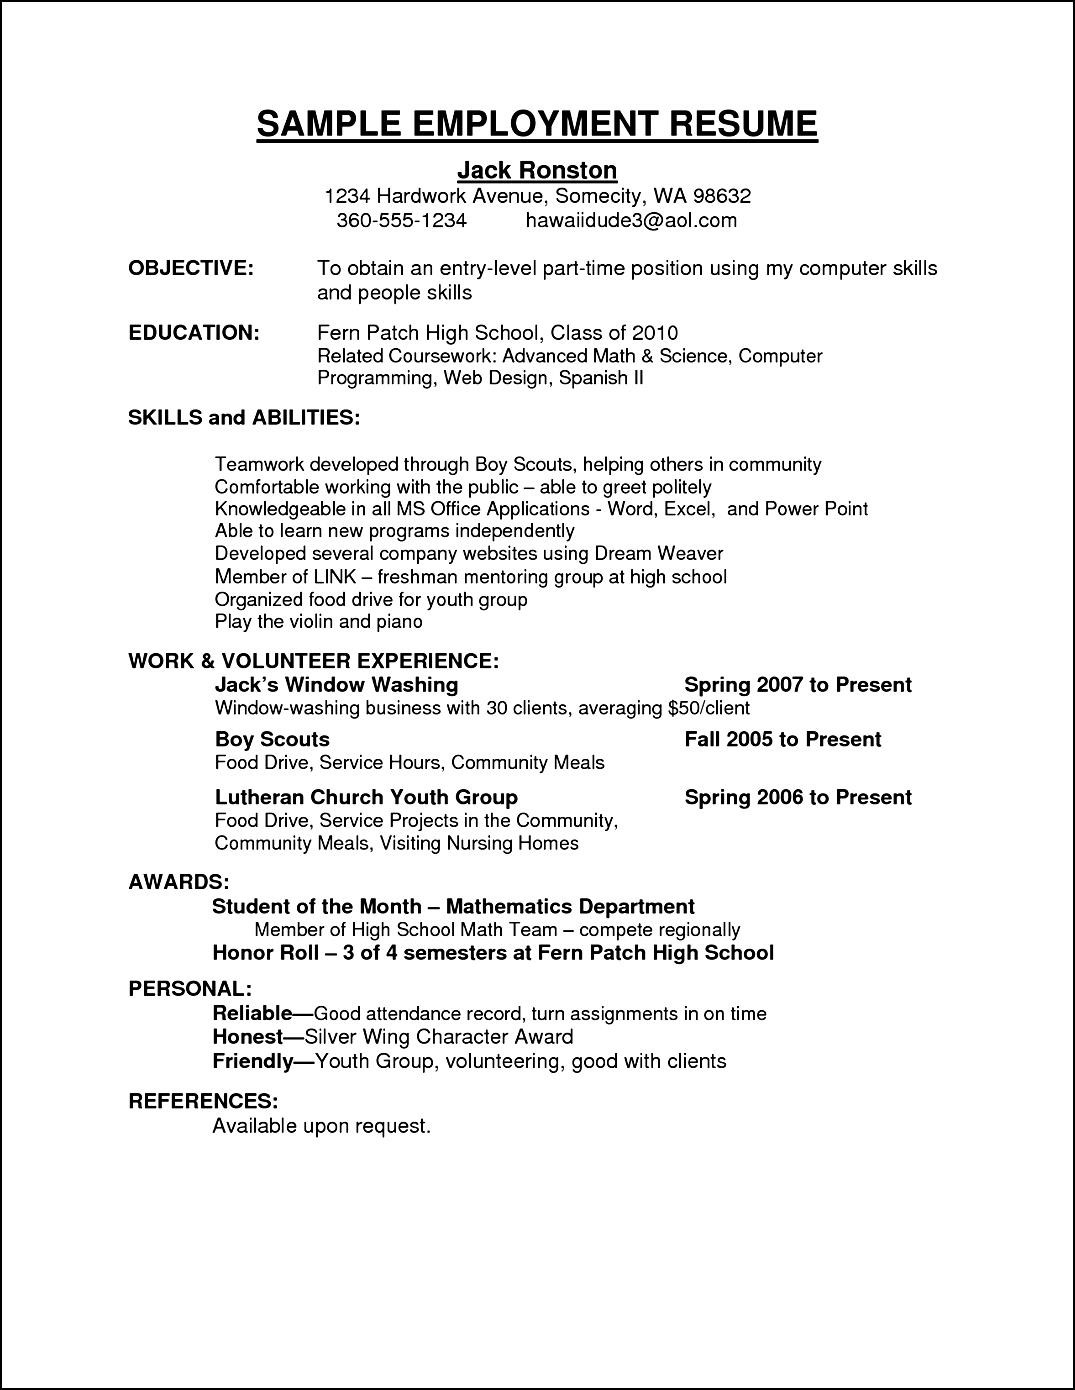 Resume Example For First Job In High School